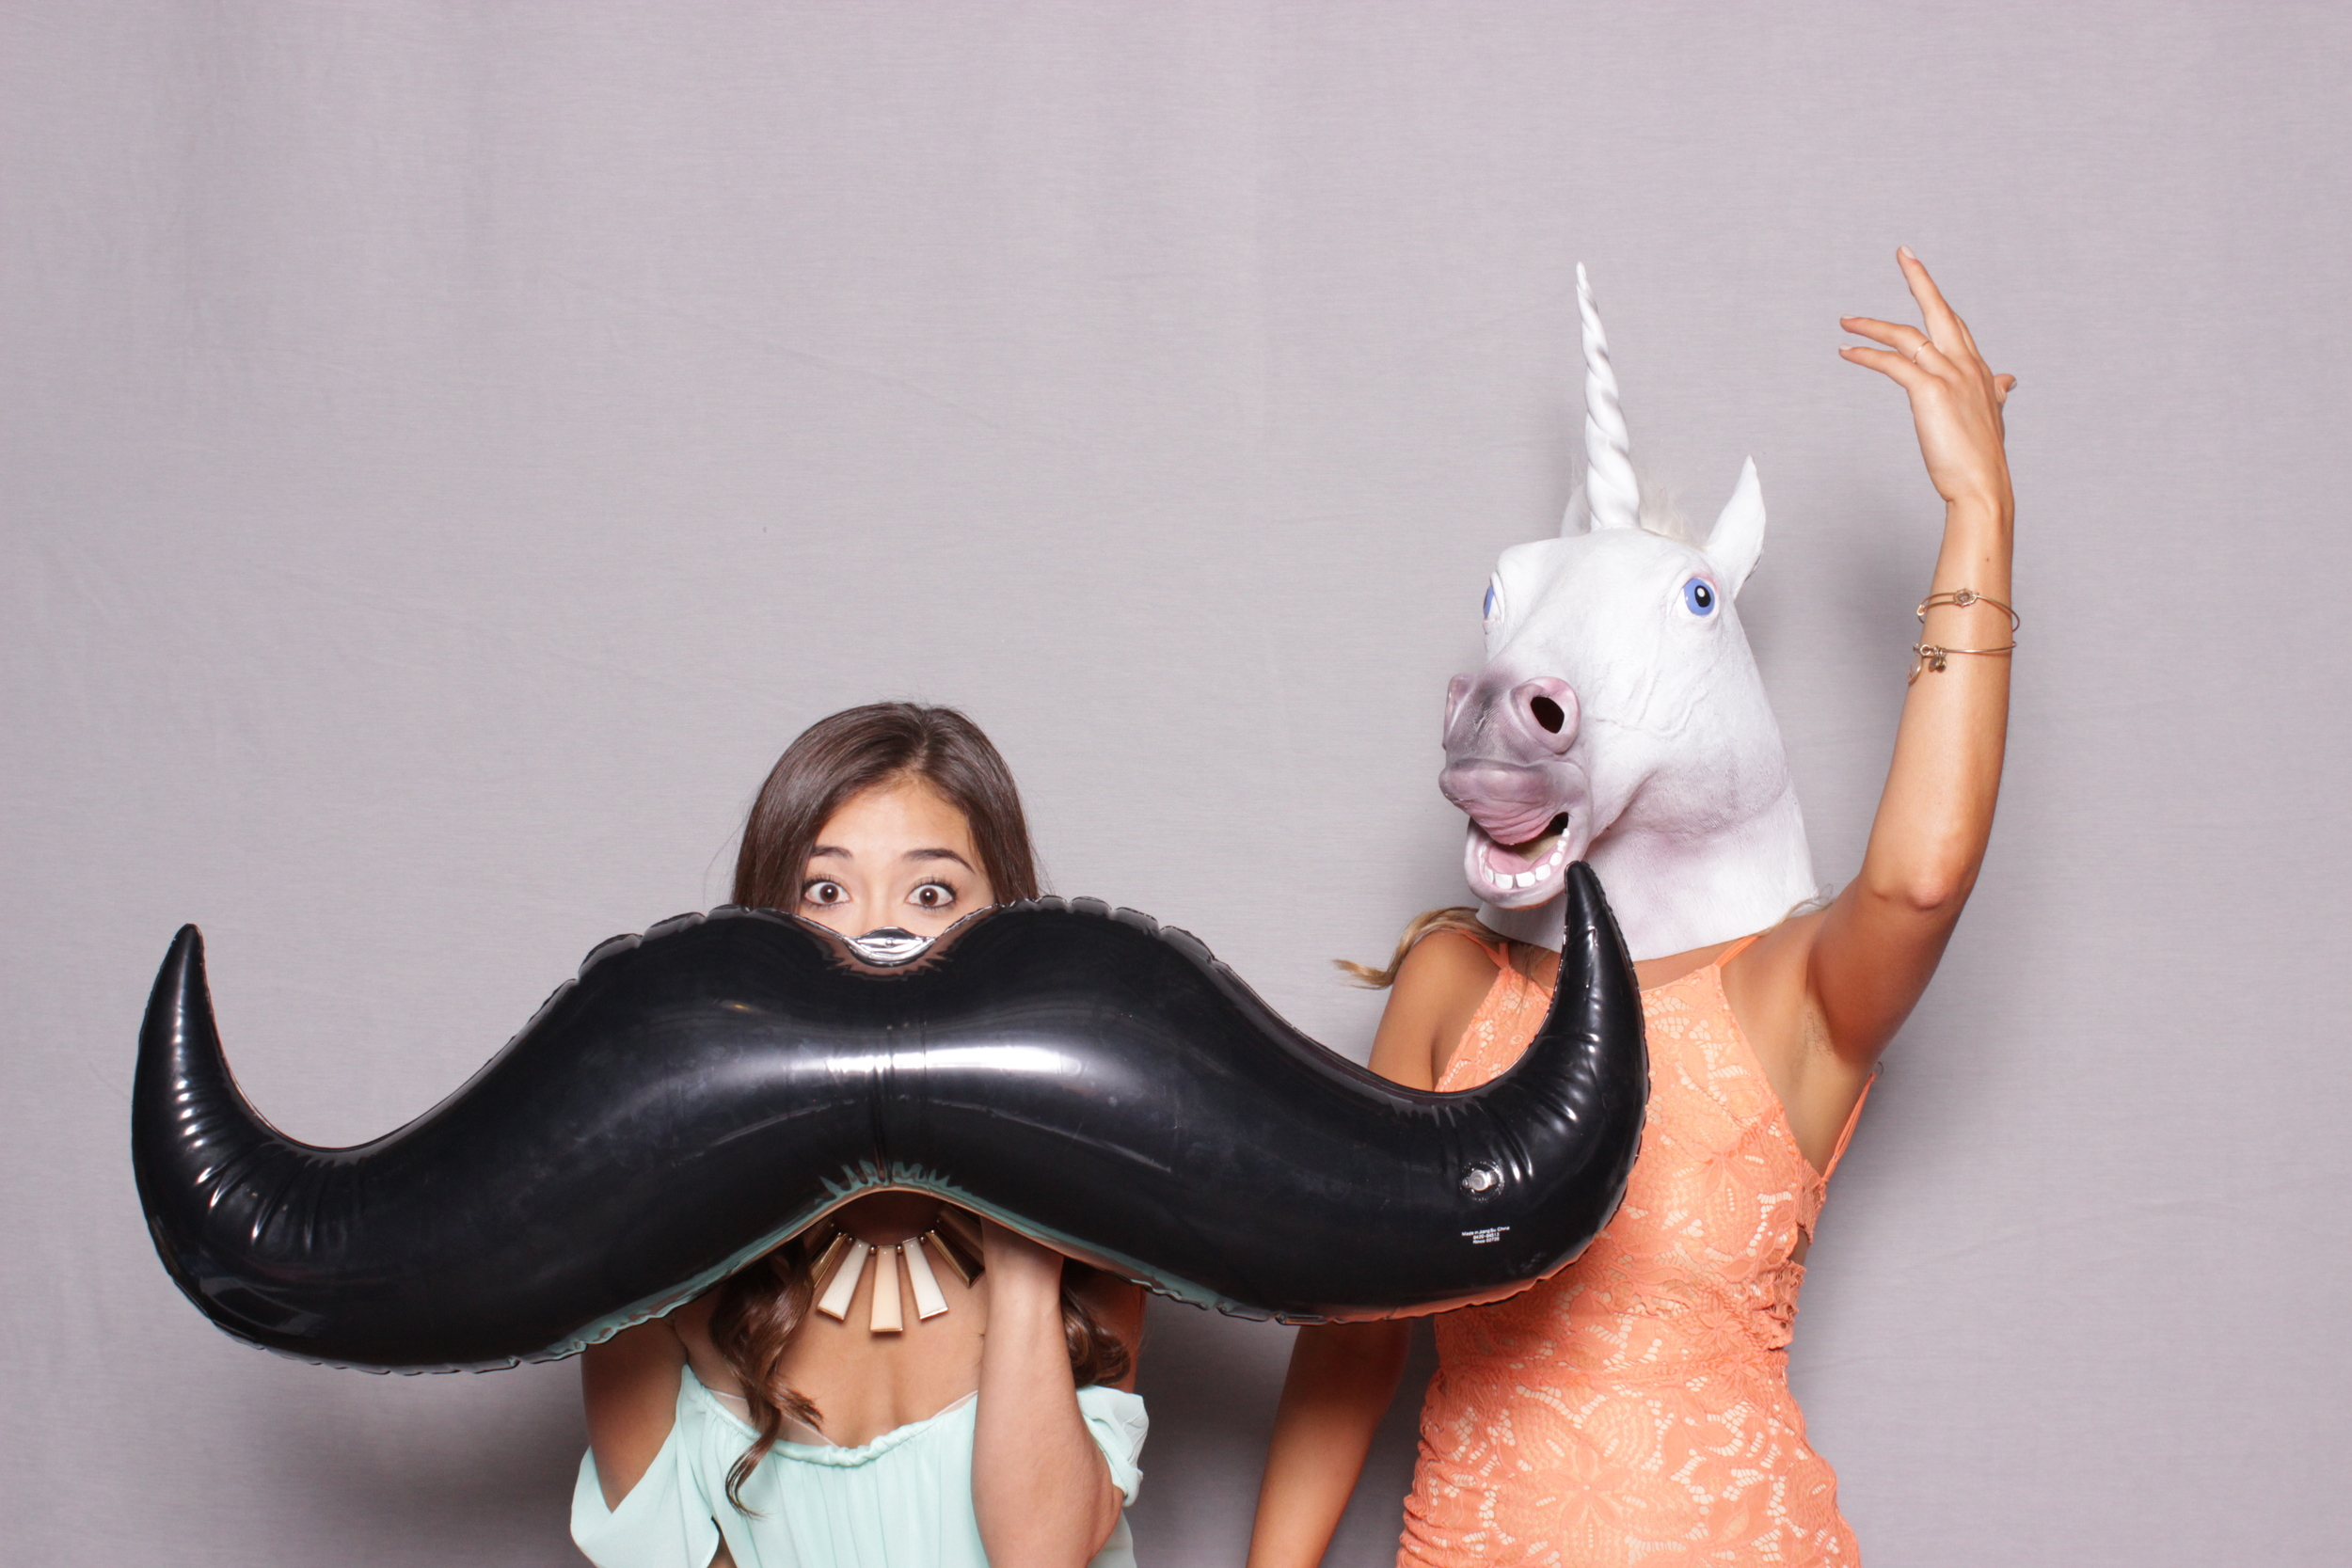 Cameron-Kristen-sacramento-photo-booth_0076.JPG